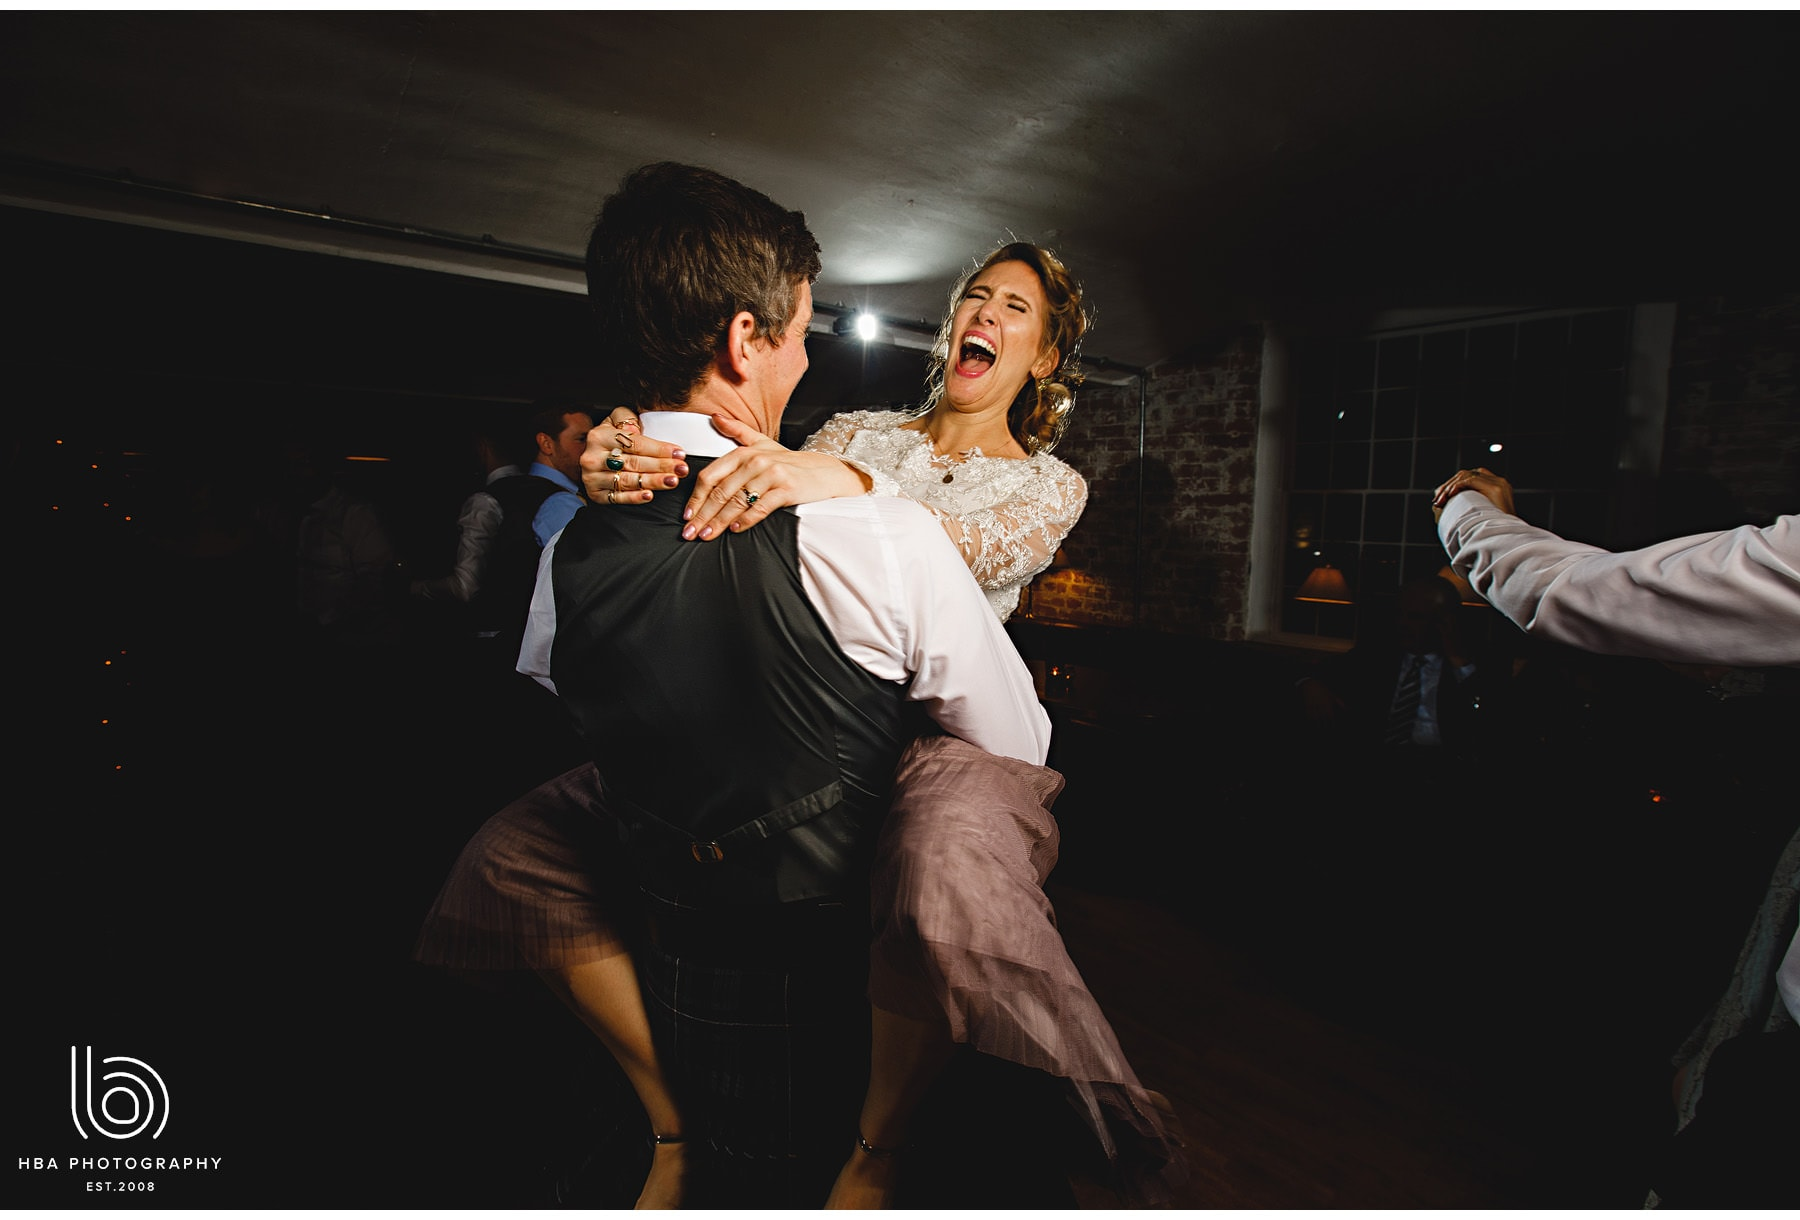 the bride dancing with her new husband